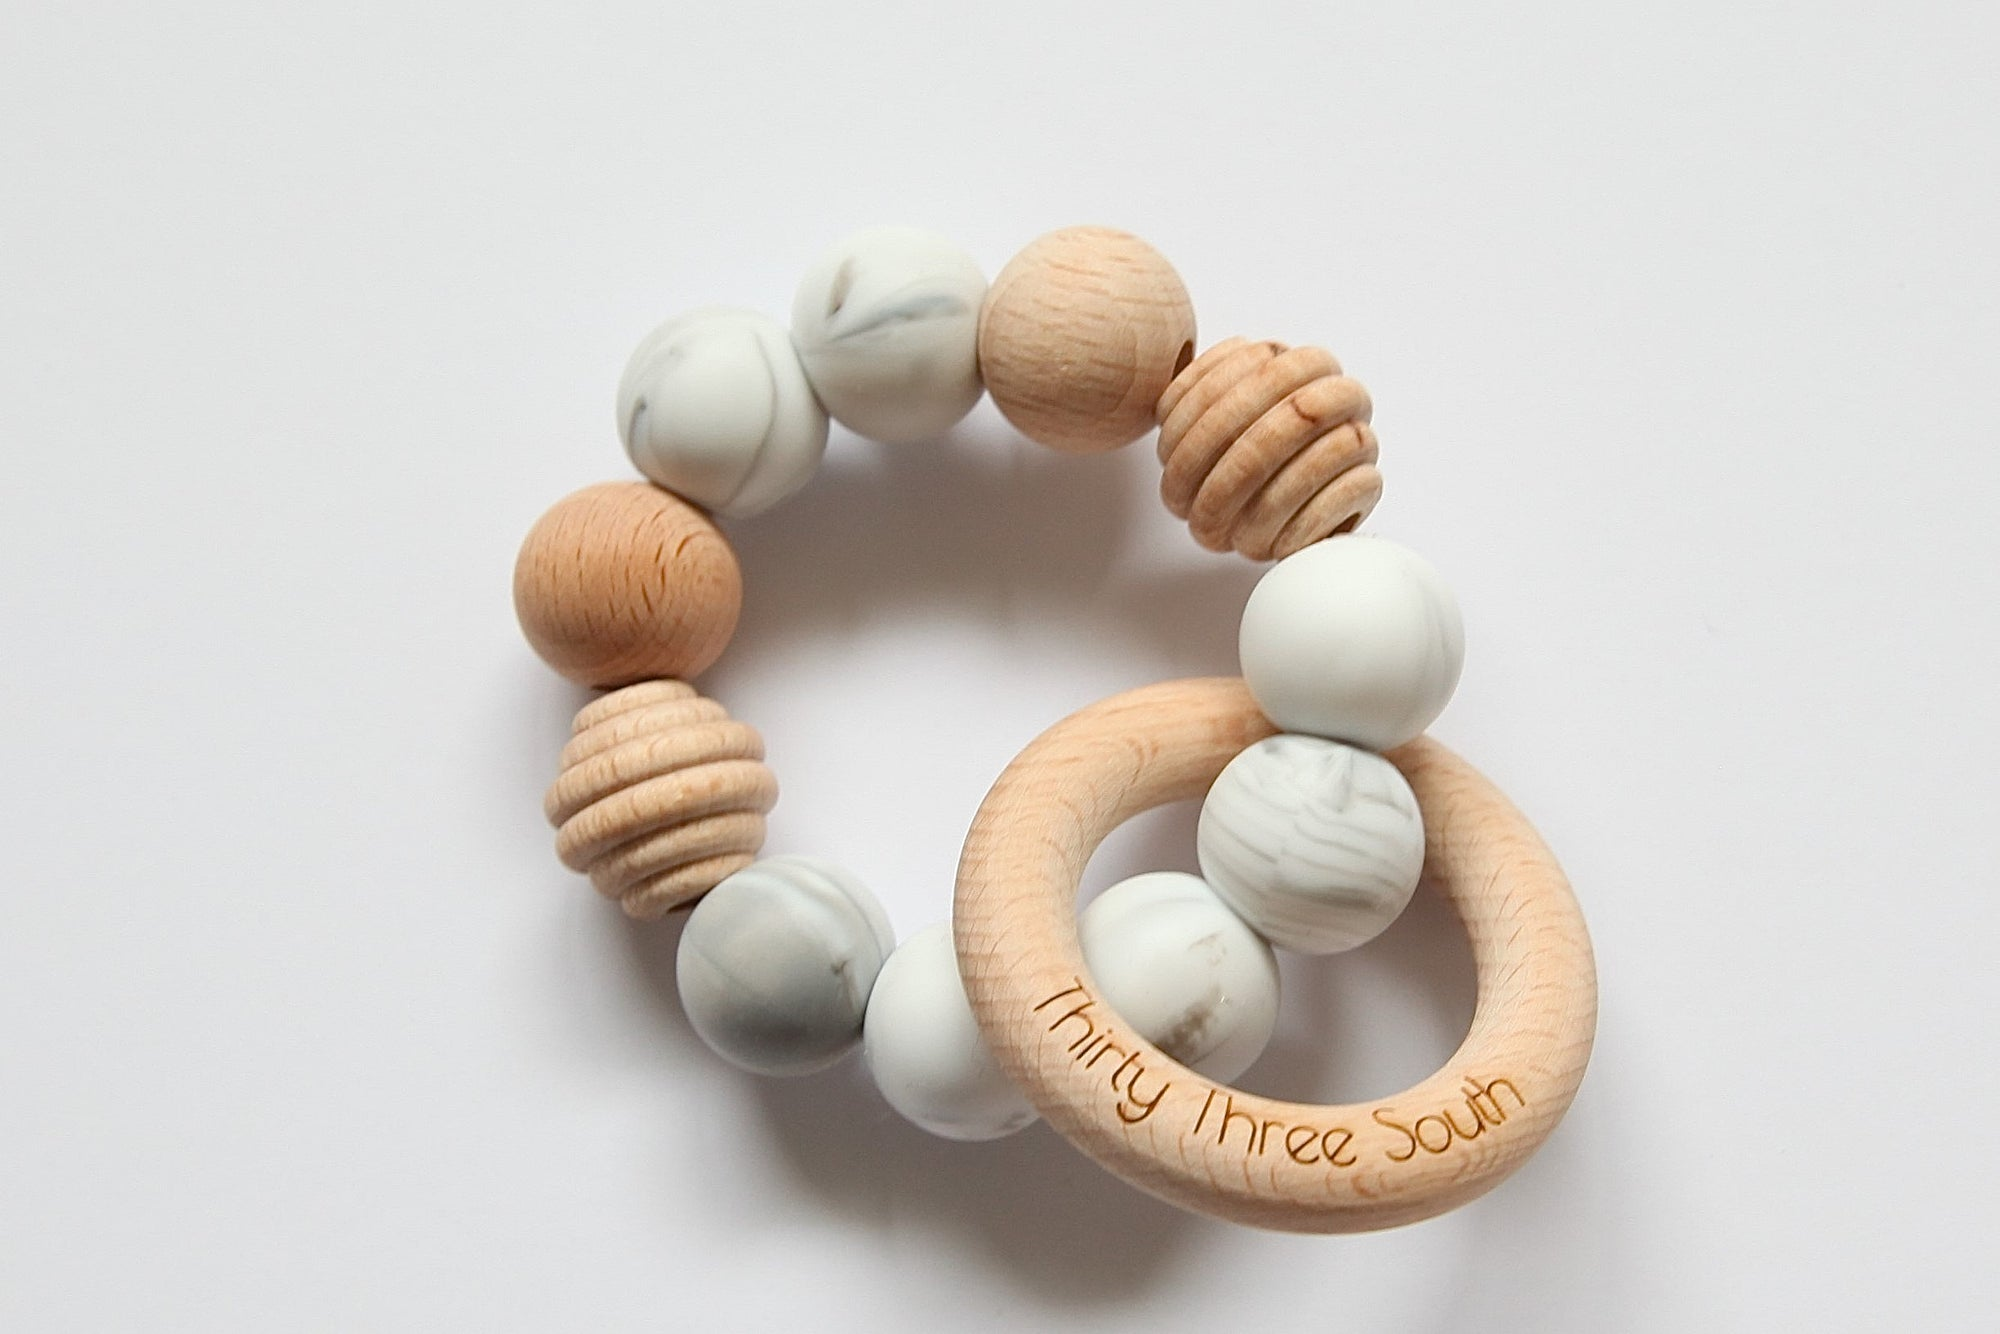 Thirty Three South Wooden Teethers Positano Grey Marble